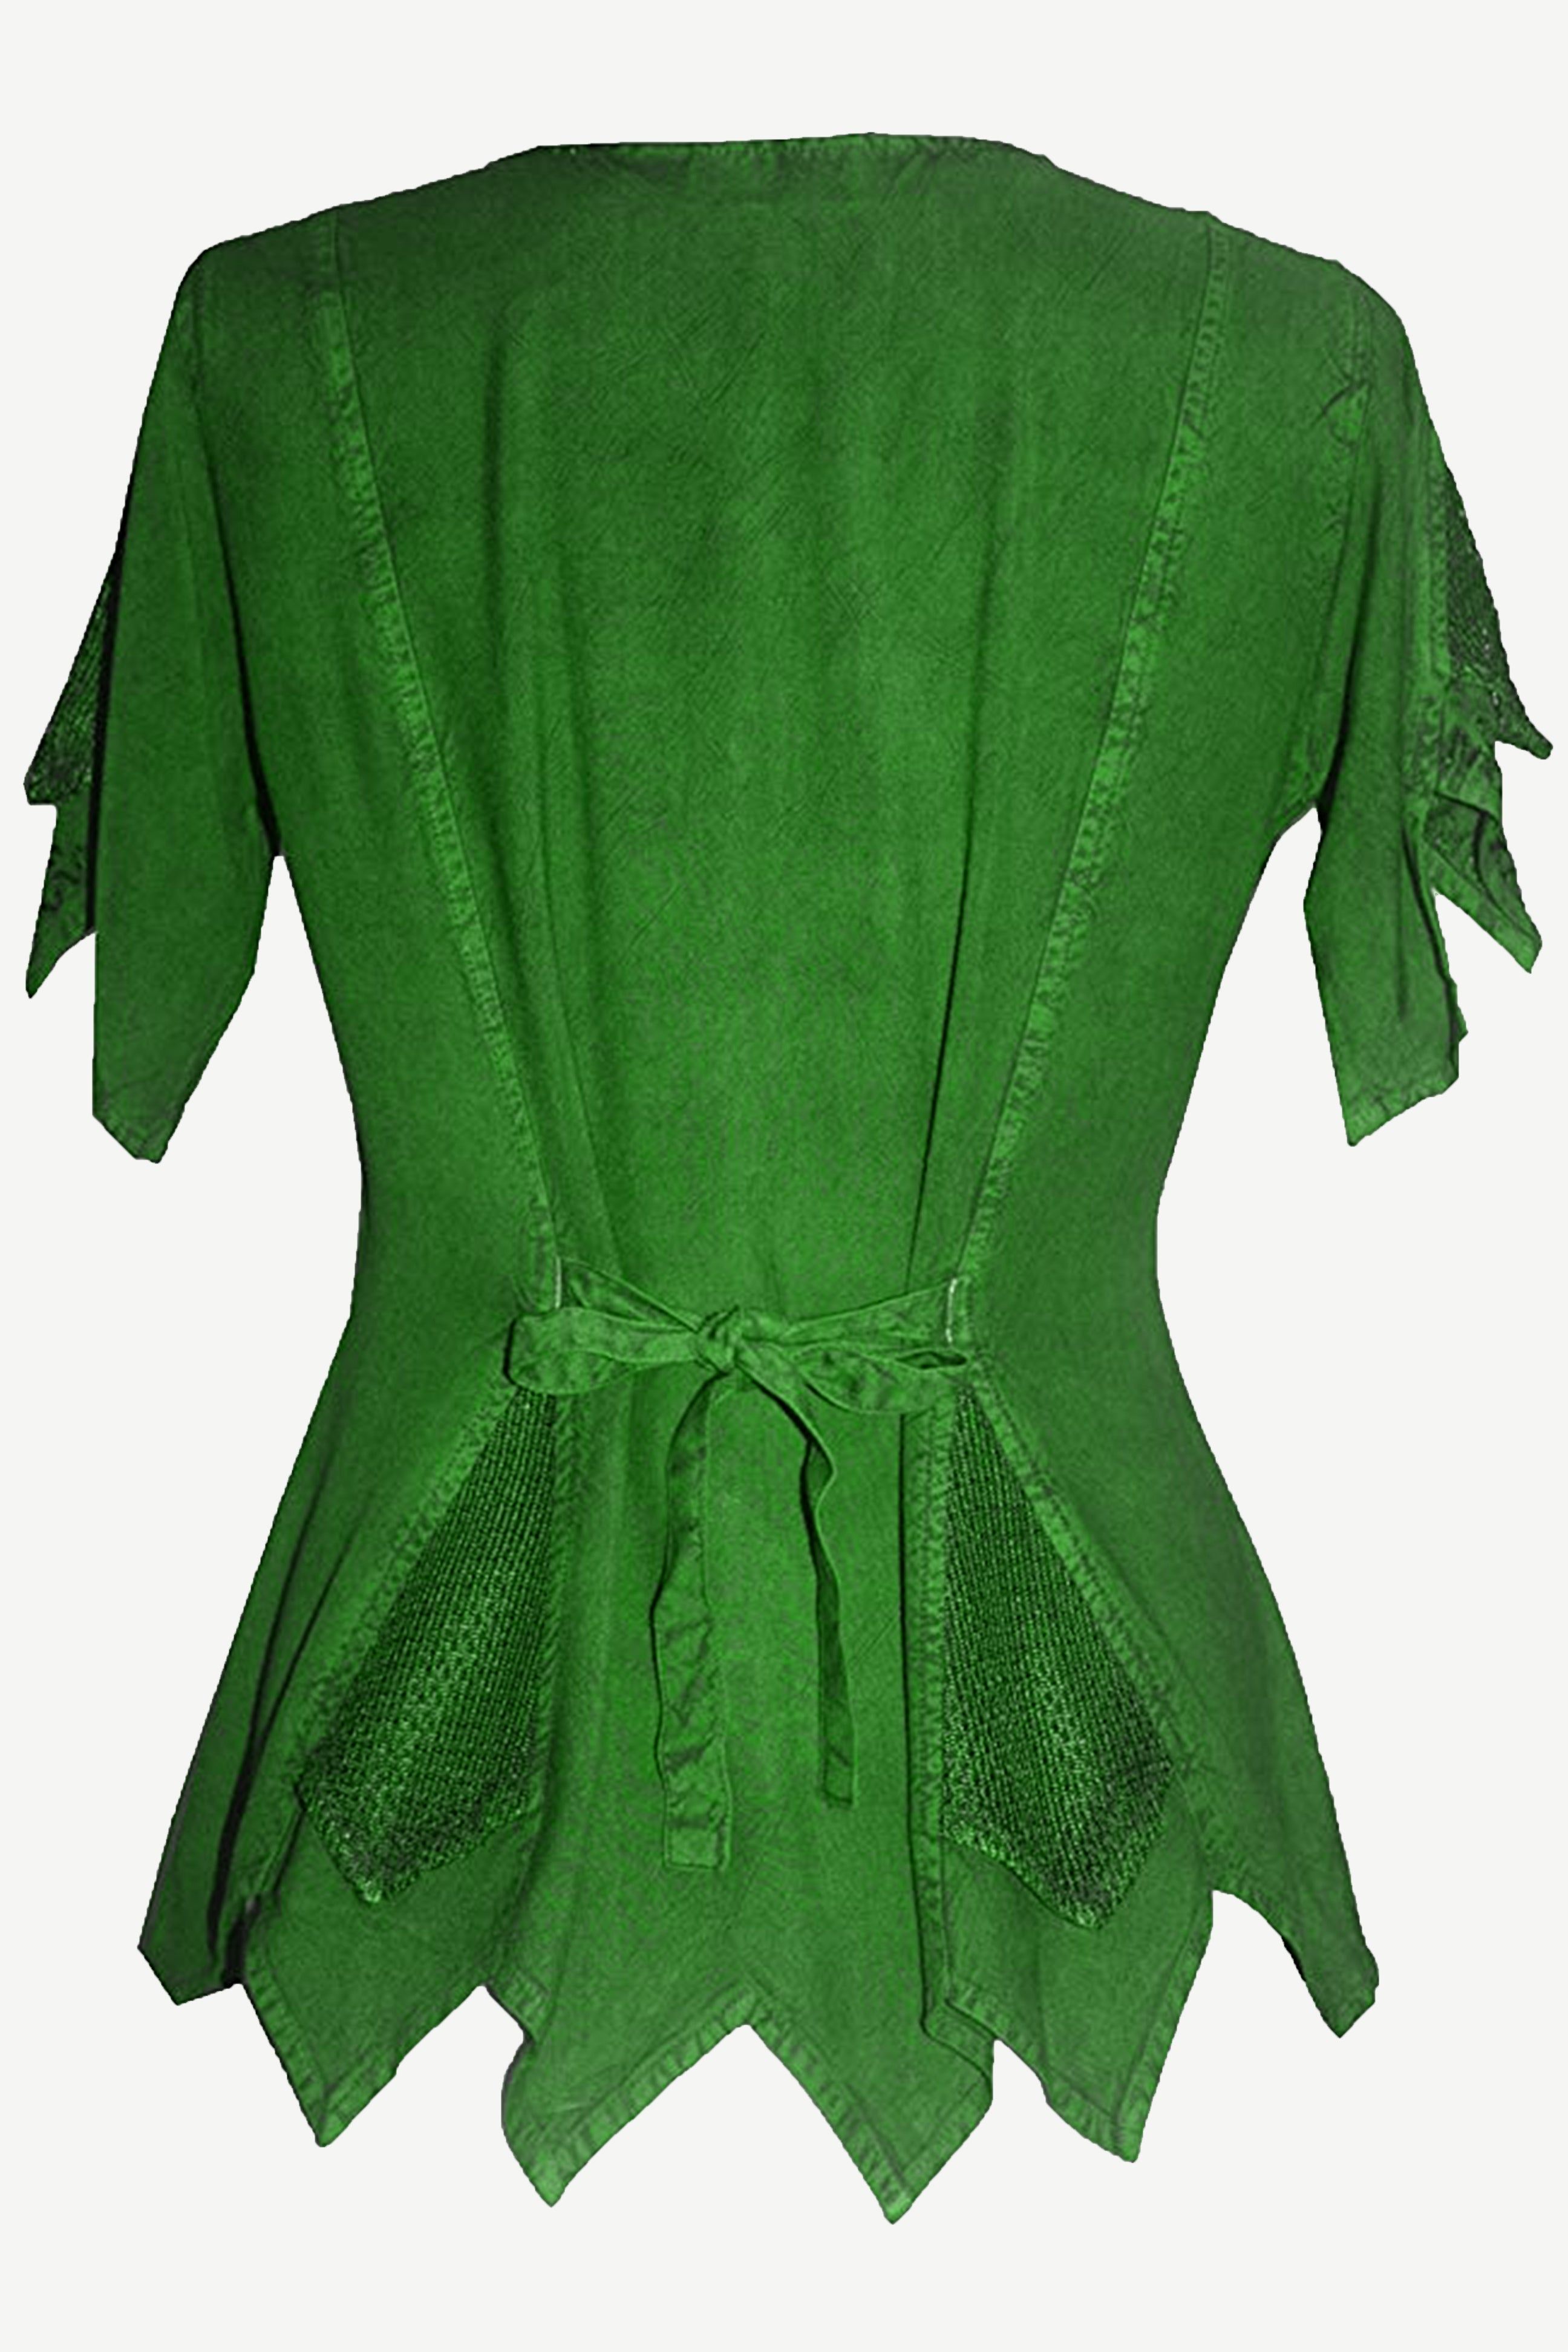 Gypsy Medieval Netted Asymmetrical Vintage Top Blouse - Agan Traders, E Green